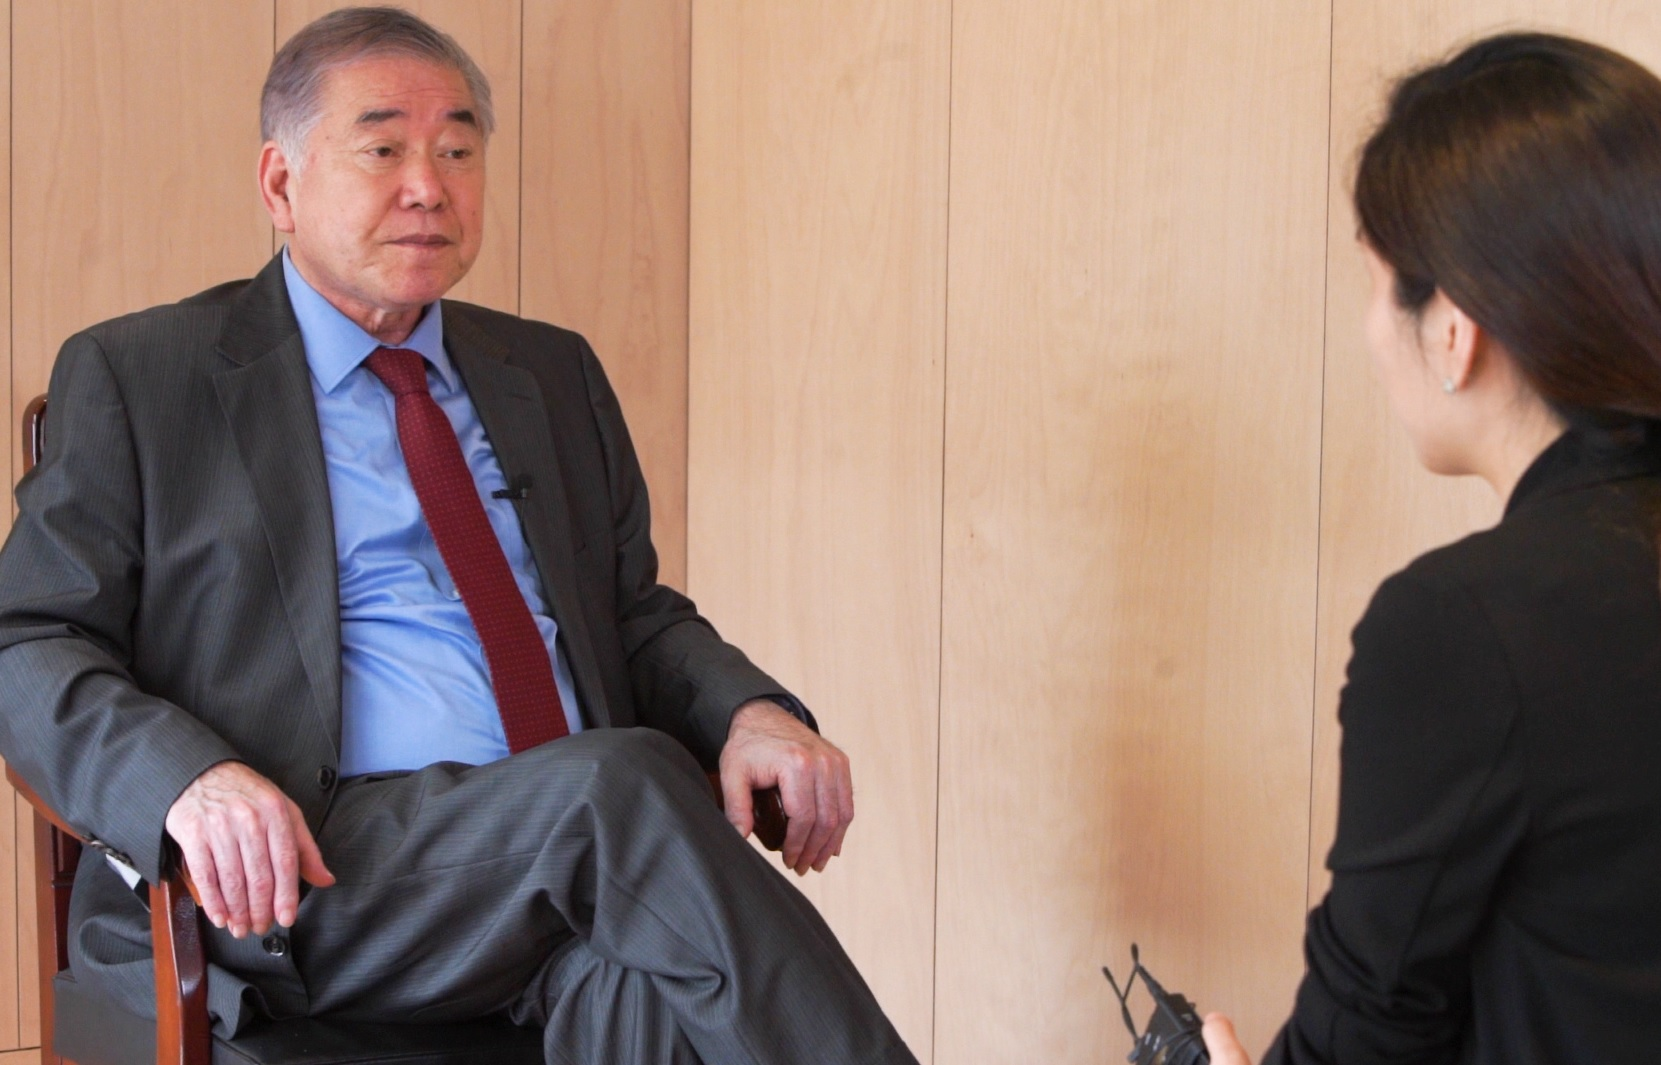 [Exclusive] Presidential Adviser: USFK Reduction Could Hurt Regional Stability